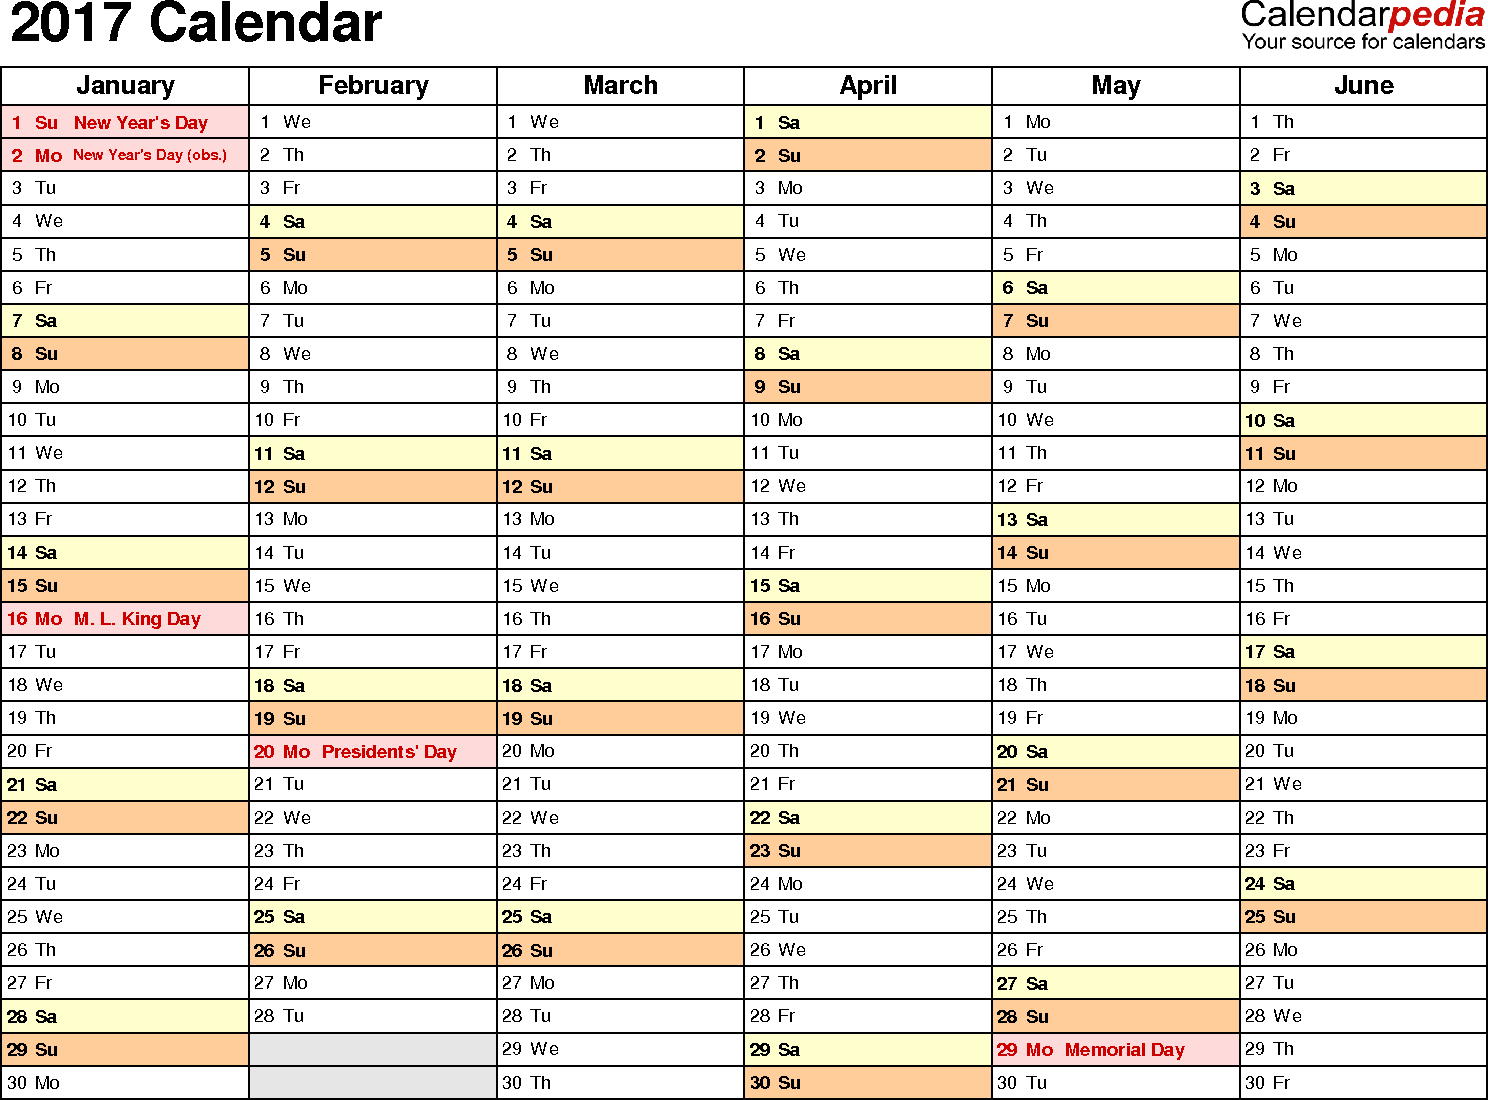 Ediblewildsus  Seductive  Calendar  Download  Free Printable Excel Templates Xls With Handsome Template   Calendar For Excel Months Horizontally  Pages Landscape Orientation With Charming Combining Excel Cells Also Weekly Employee Schedule Template Excel In Addition Forgot Password On Excel File And Multivariate Regression In Excel As Well As Calculate Duration In Excel Additionally Excel Pivot Tables Tutorial From Calendarpediacom With Ediblewildsus  Handsome  Calendar  Download  Free Printable Excel Templates Xls With Charming Template   Calendar For Excel Months Horizontally  Pages Landscape Orientation And Seductive Combining Excel Cells Also Weekly Employee Schedule Template Excel In Addition Forgot Password On Excel File From Calendarpediacom